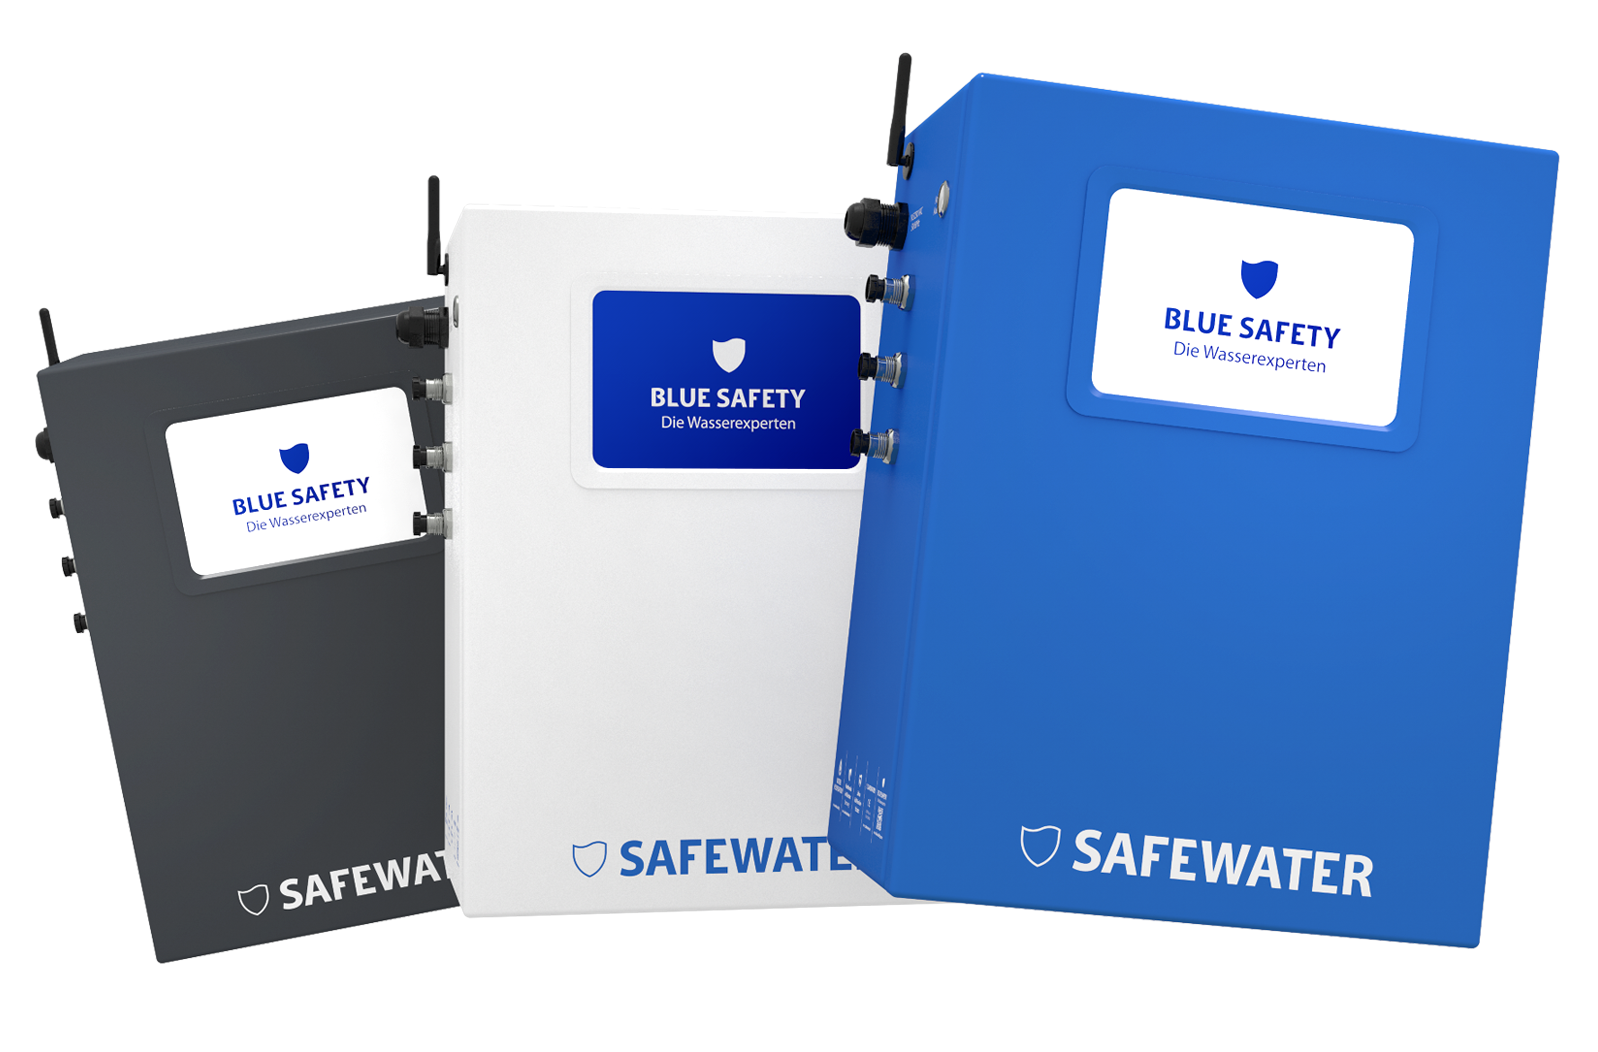 safewater_front_2016